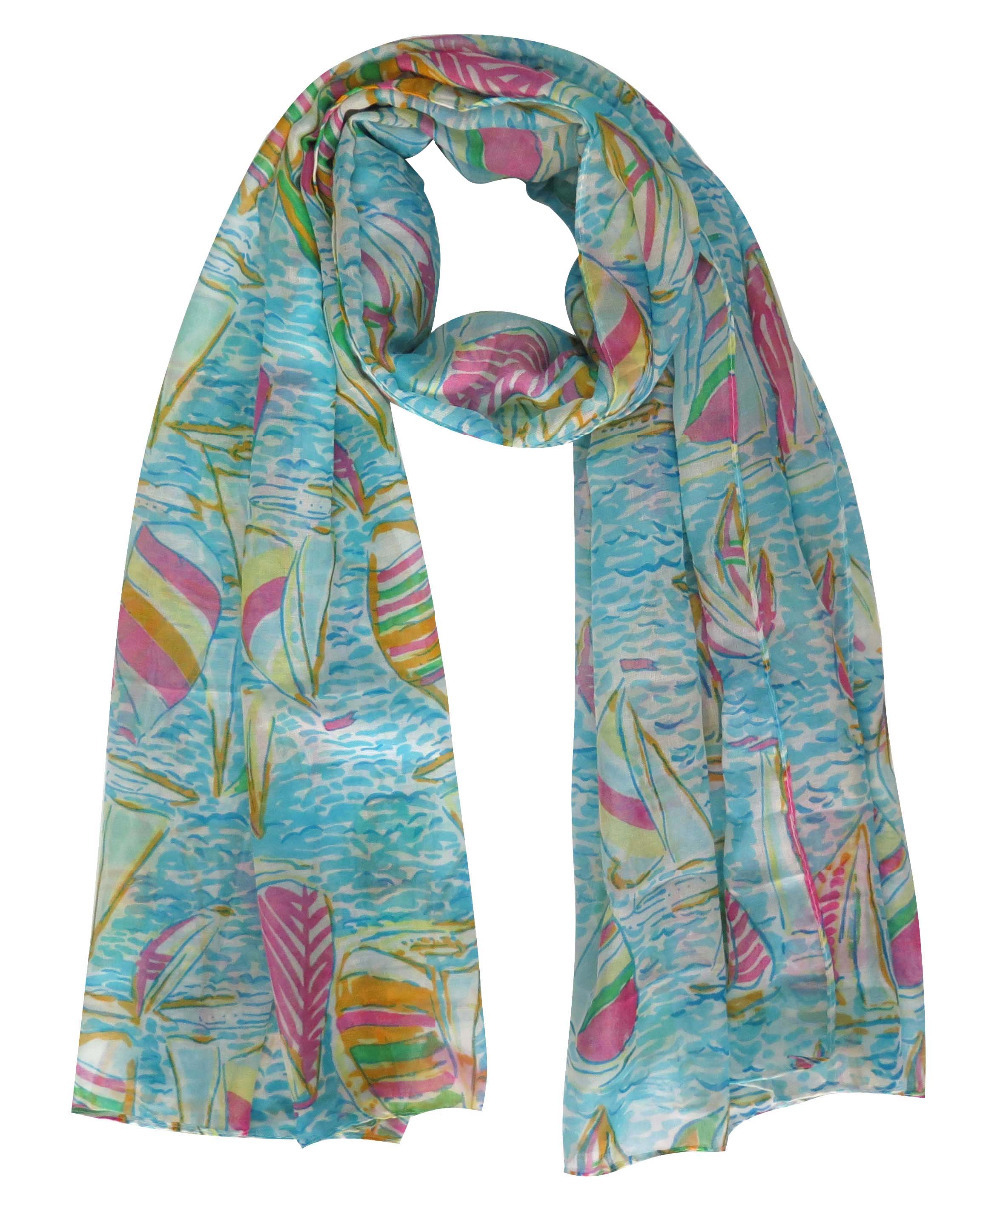 sailboat on sea print s large scarf wrap